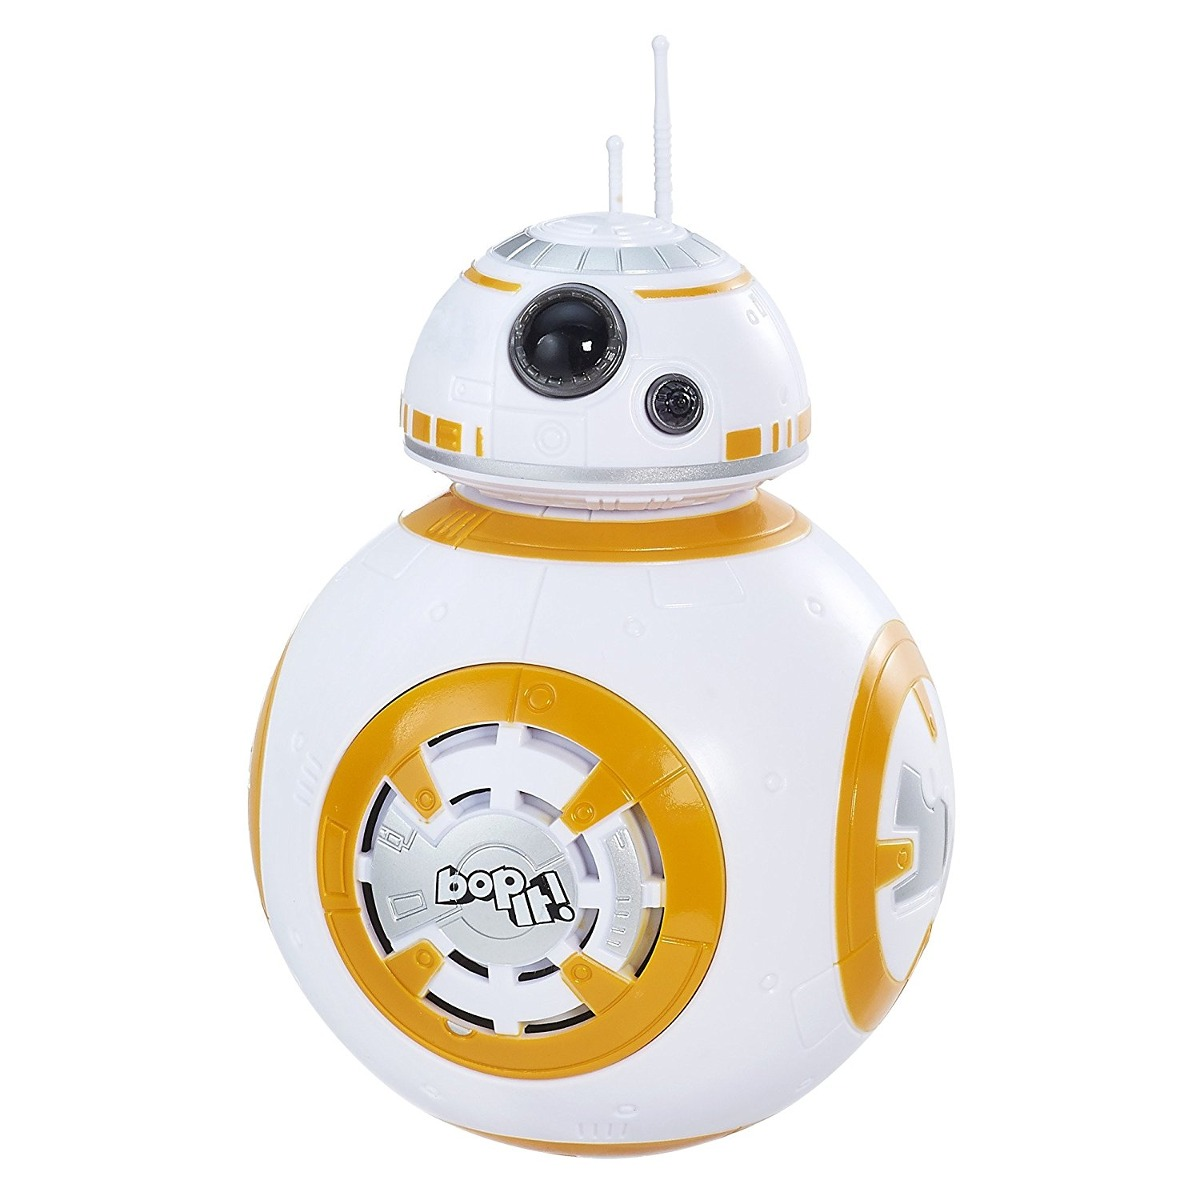 Hasbro Gaming Juego De Mesa Bop It Star Wars Bb 8 499 00 En